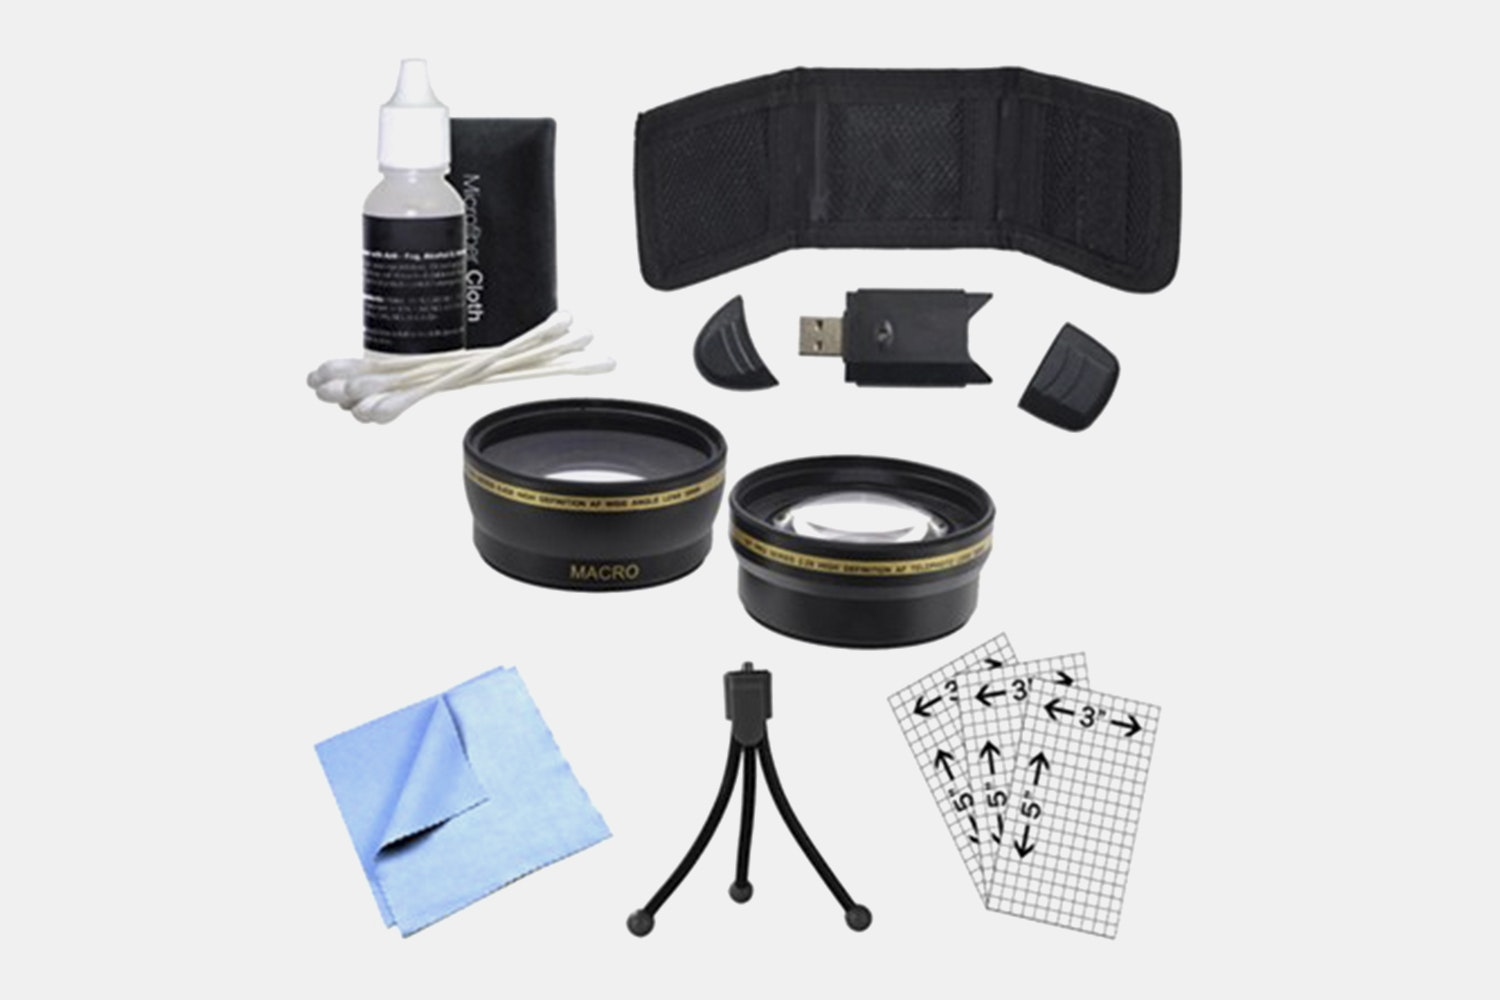 General Brand 58mm Wide Angle & Telephoto Lens, Cleaning Kit, Memory Card Wallet and More